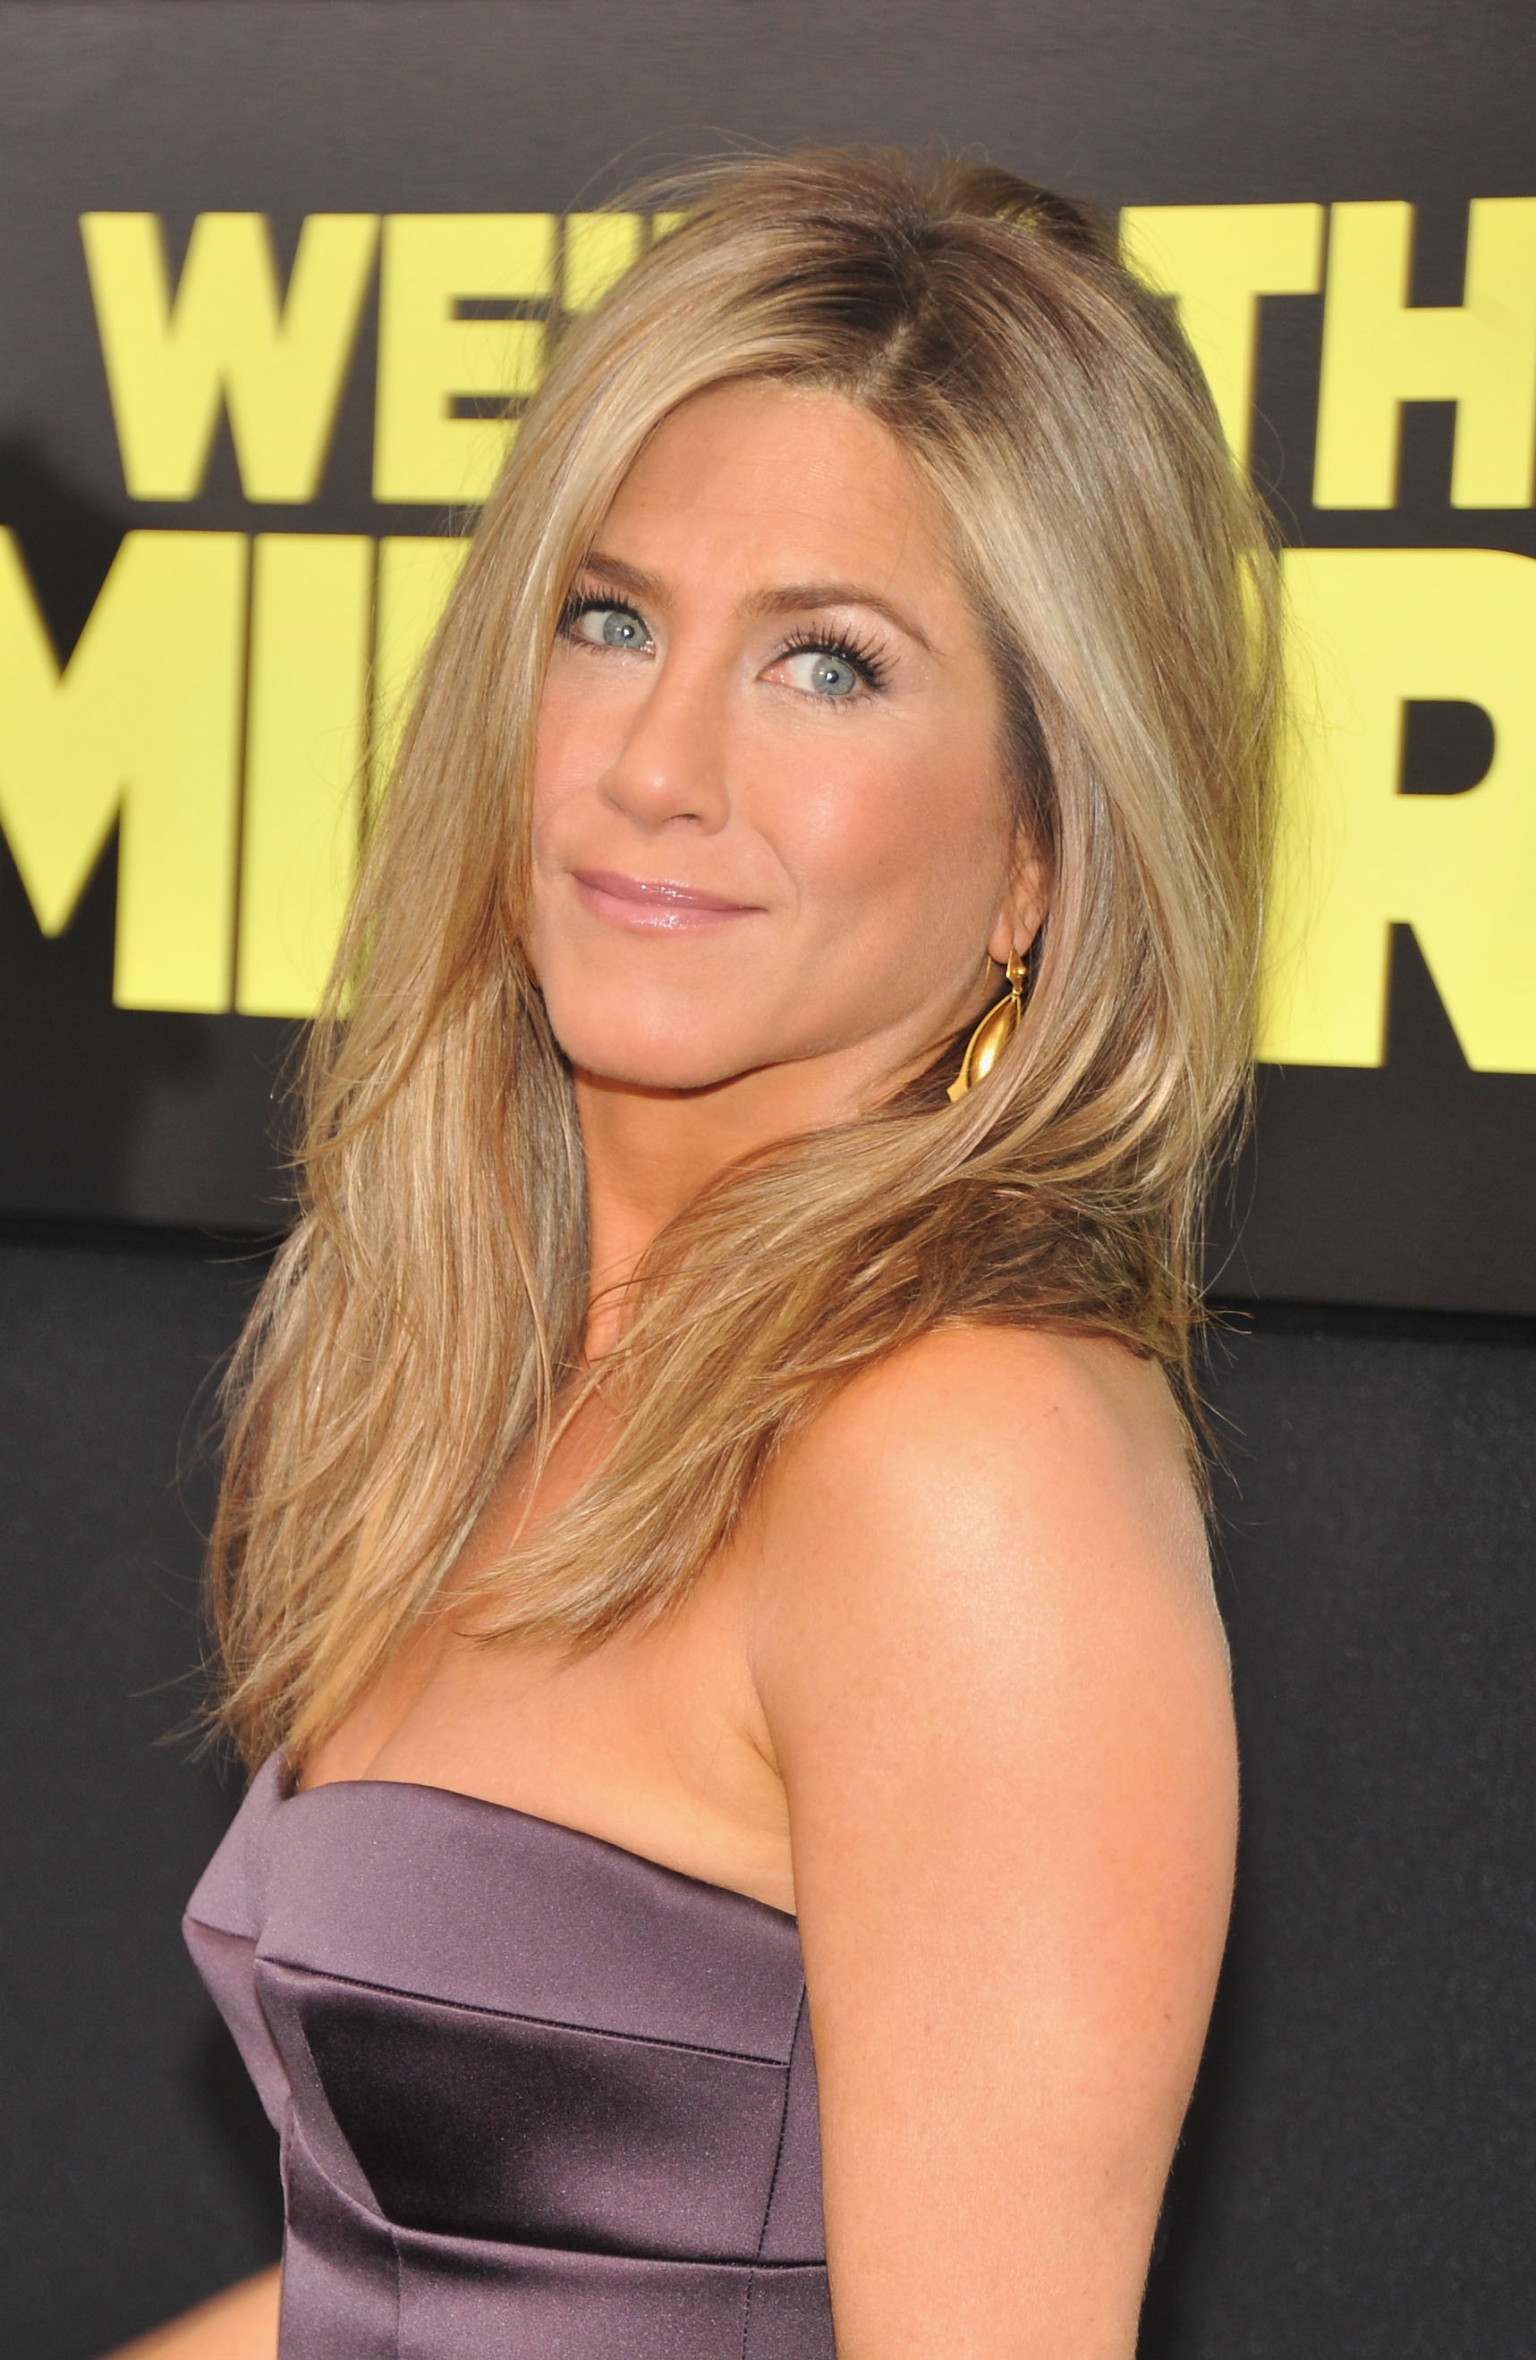 Jennifer Aniston Is Stunning With No Makeup In New ...